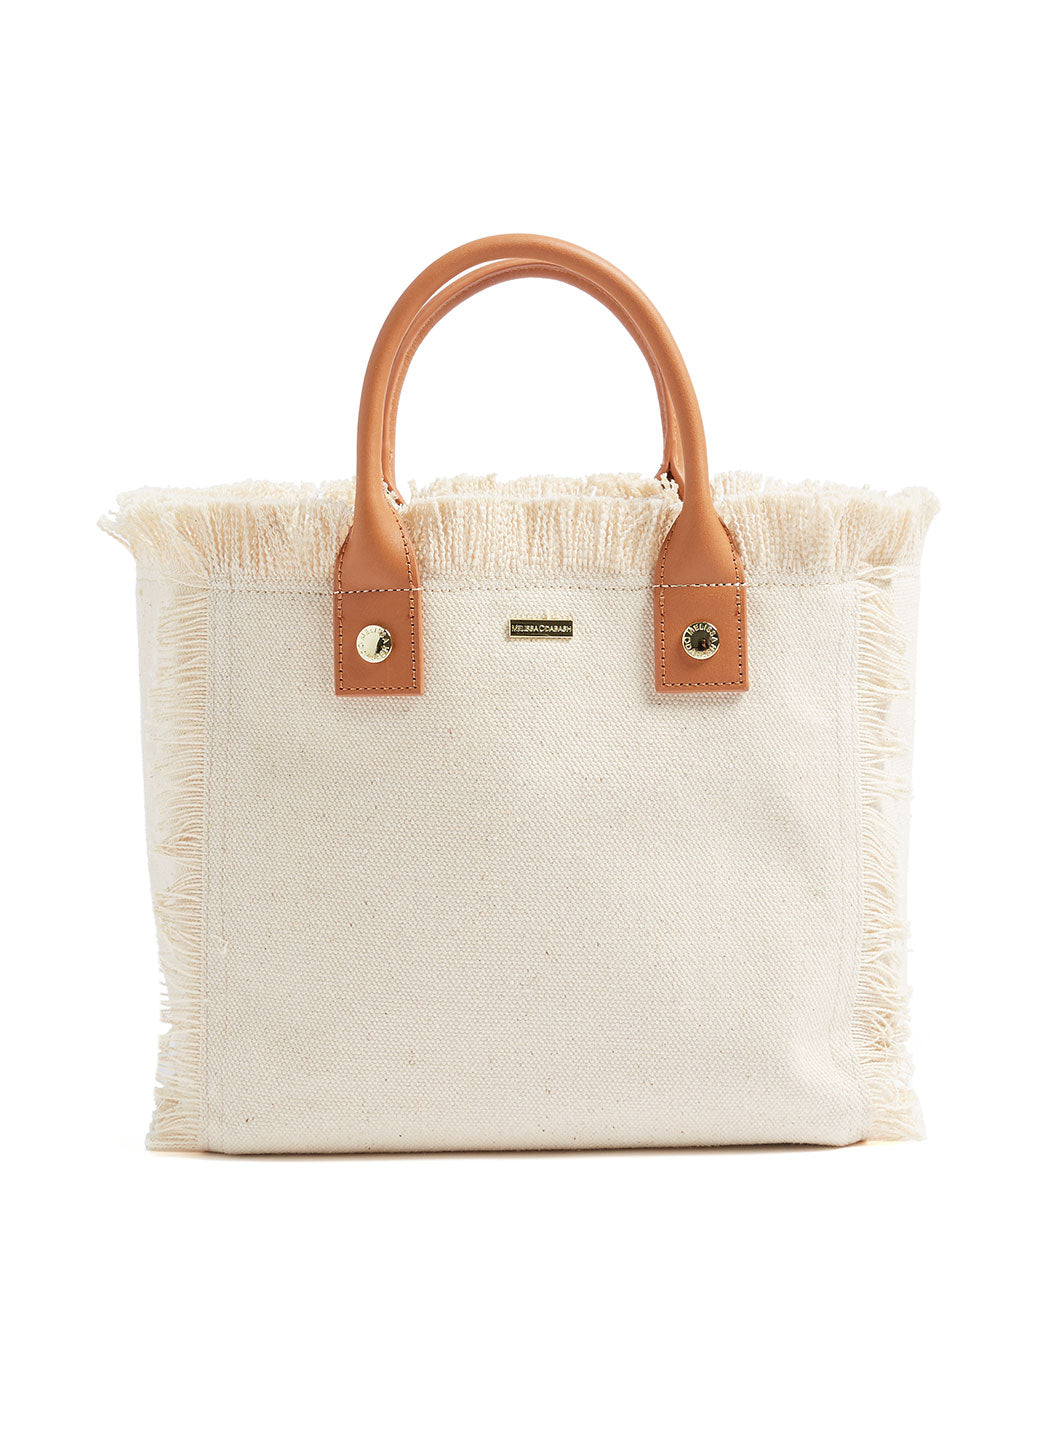 Porto cervo Custom Mini Beach Tote Beige - Melissa Odabash Accessories